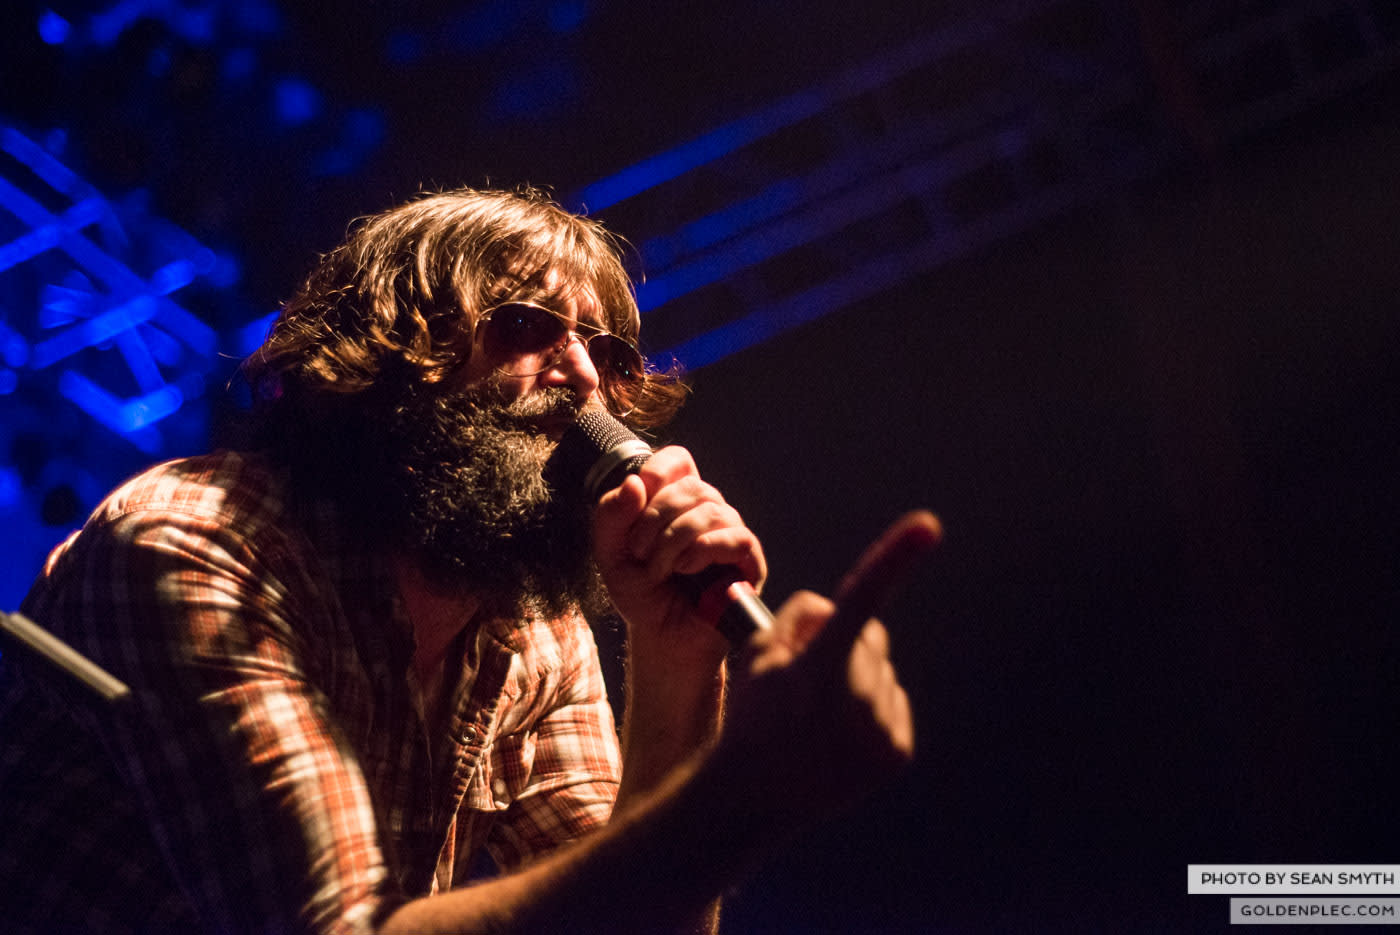 the-beards-at-button-factory-by-sean-smyth-10-12-14-10-of-49